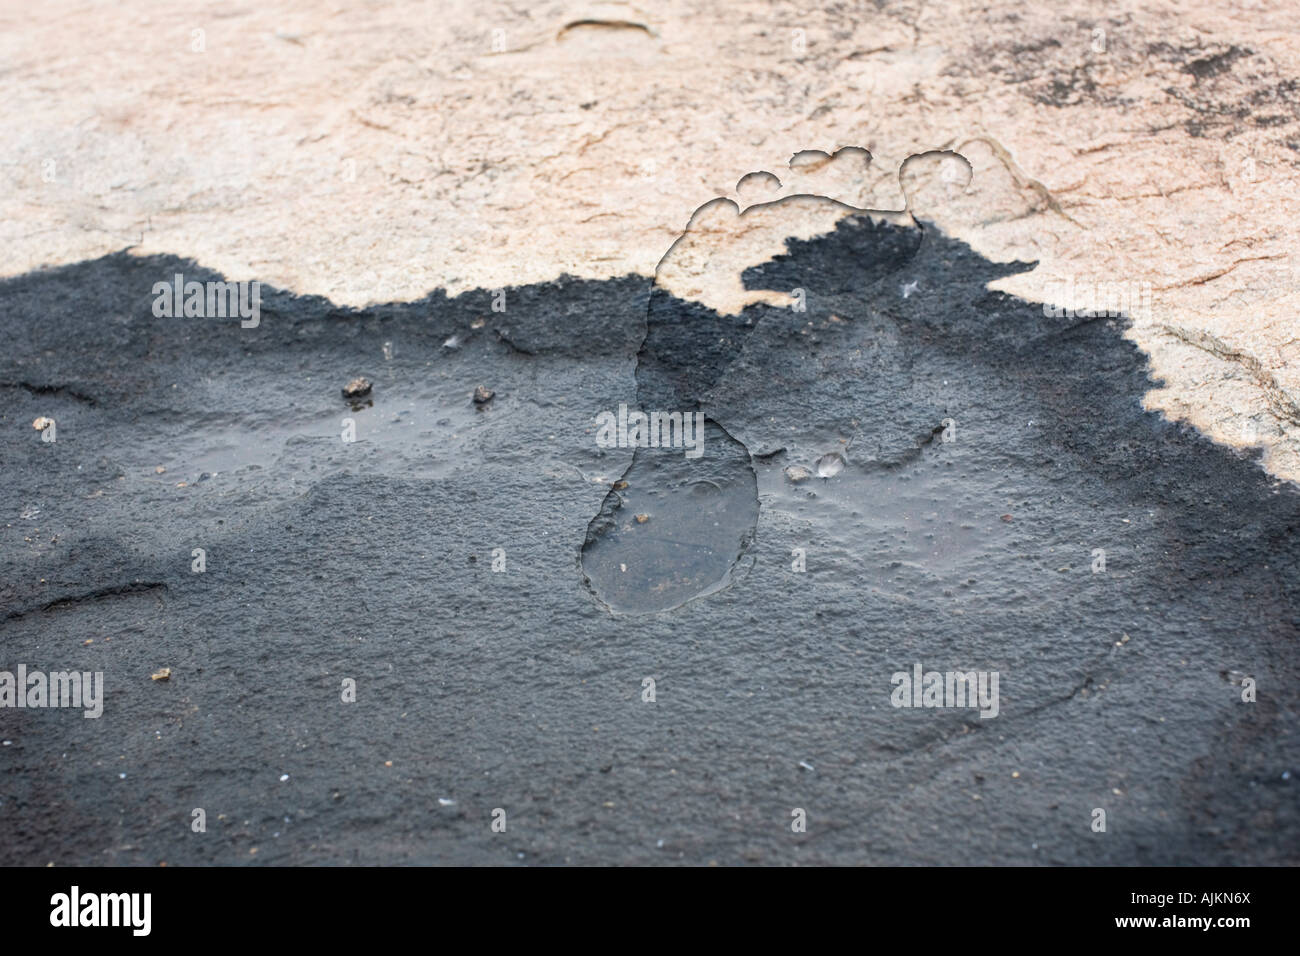 Superimposed footprint into rock to represent carbon footprint - Stock Image